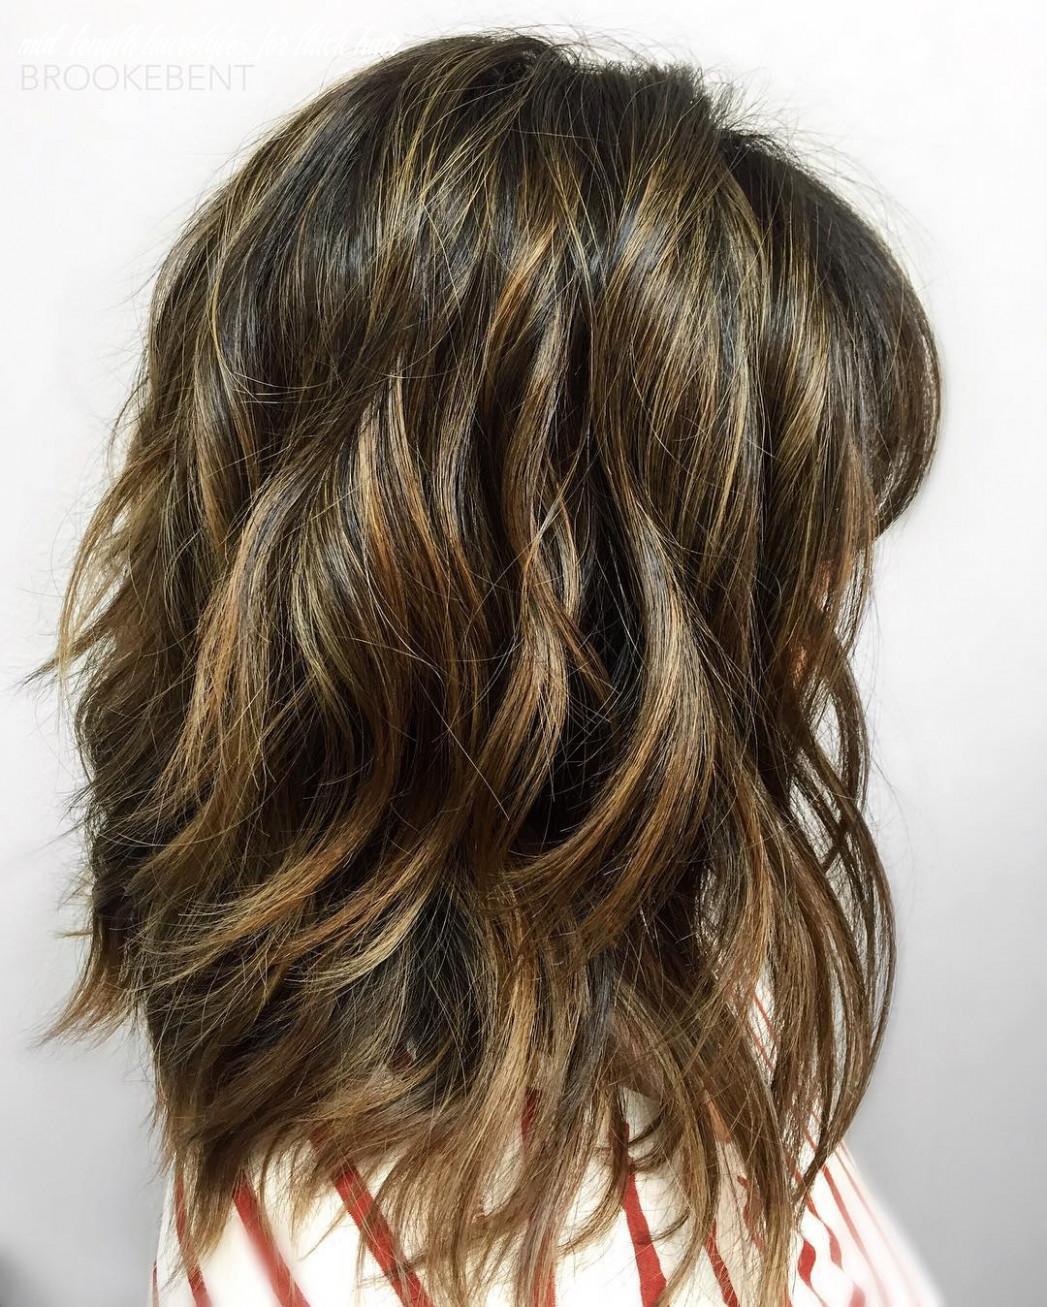 Layered hairstyles shoulder length thick hair mid length hairstyles for thick hair